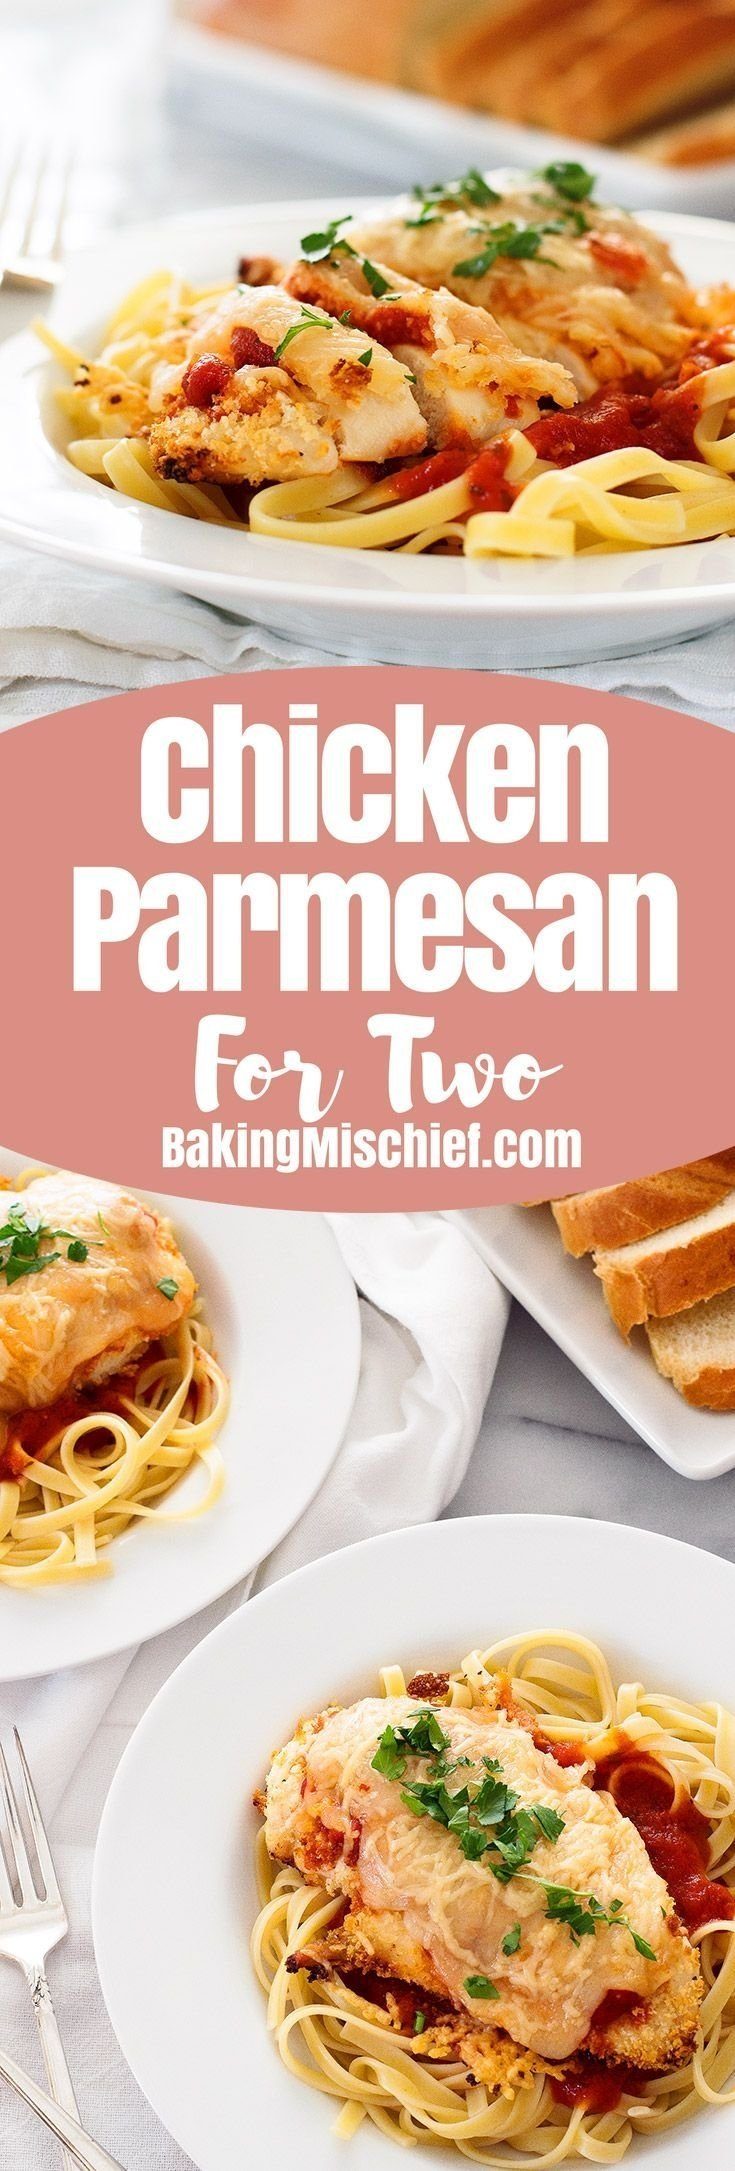 10 Nice Cheap Dinner Ideas For 2 download cheap easy recipes for two food photos 8 2021